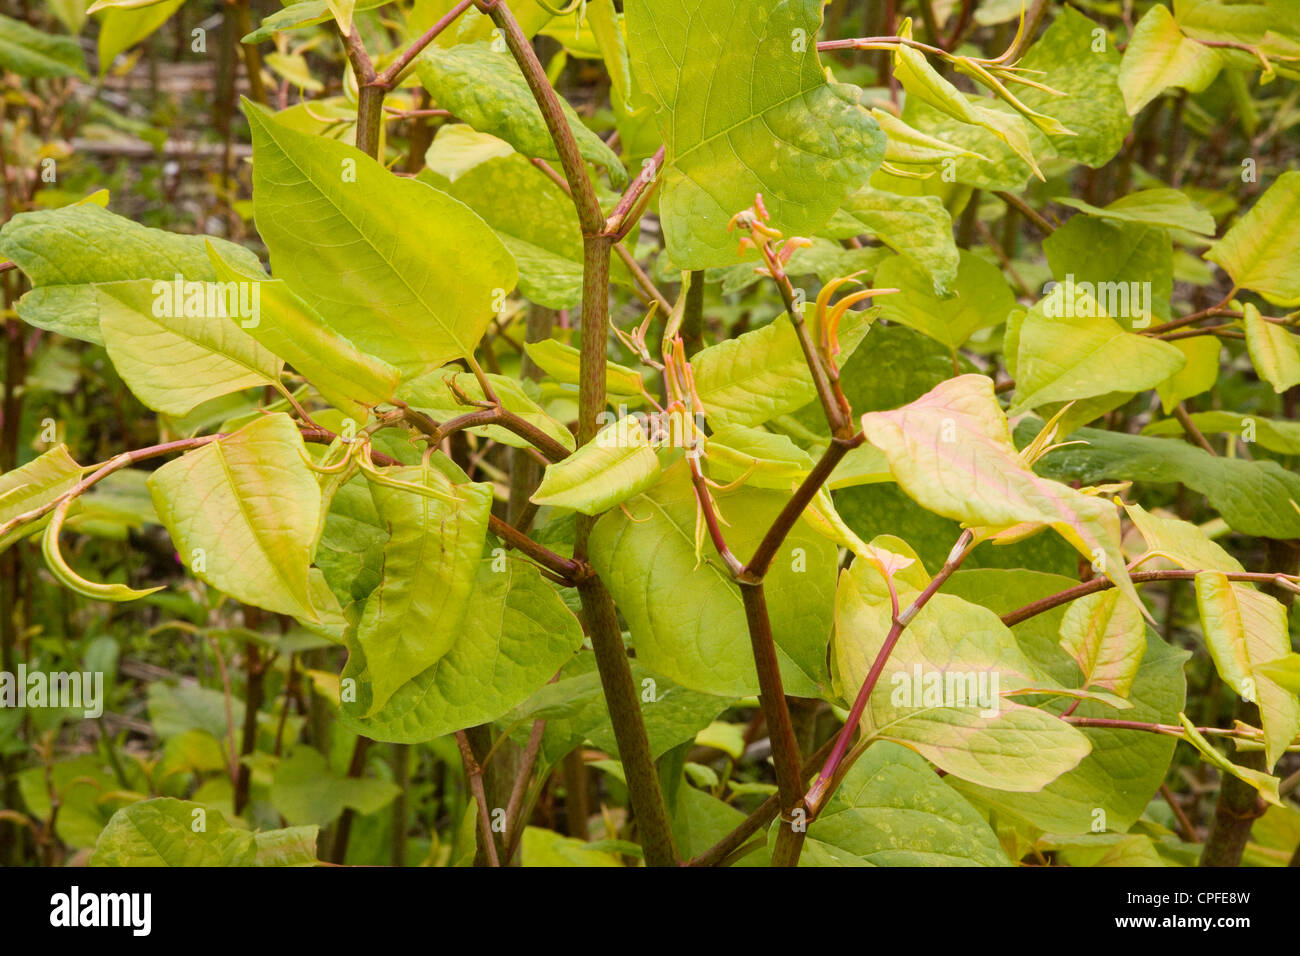 Japanese knotweed plant Fallopia japonica close up - Stock Image